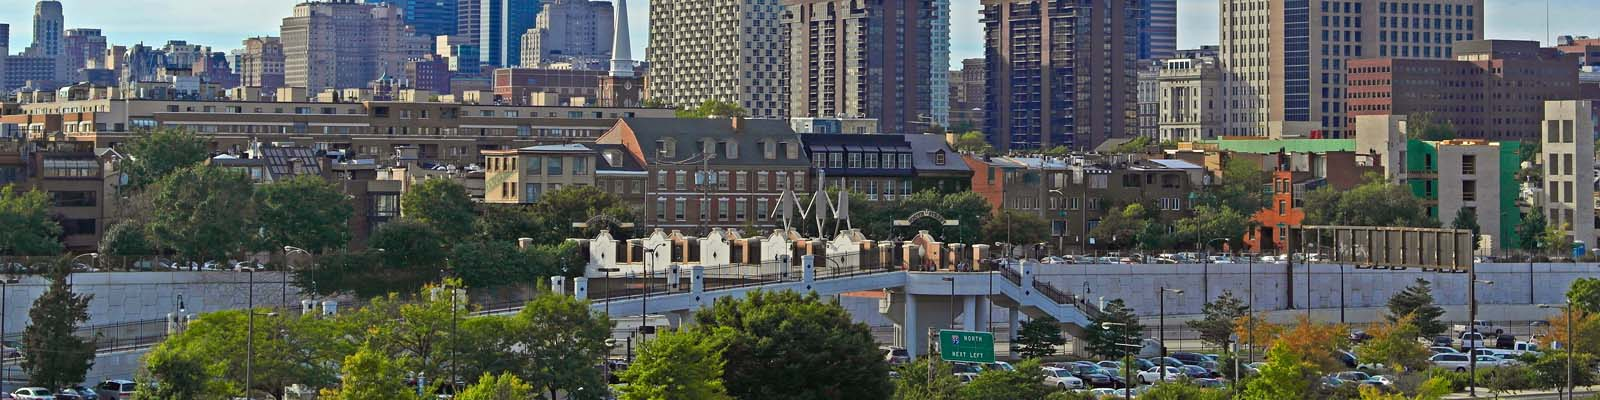 This is an image of downtown Philadelphia where ASTA-USA offers professional translation services.